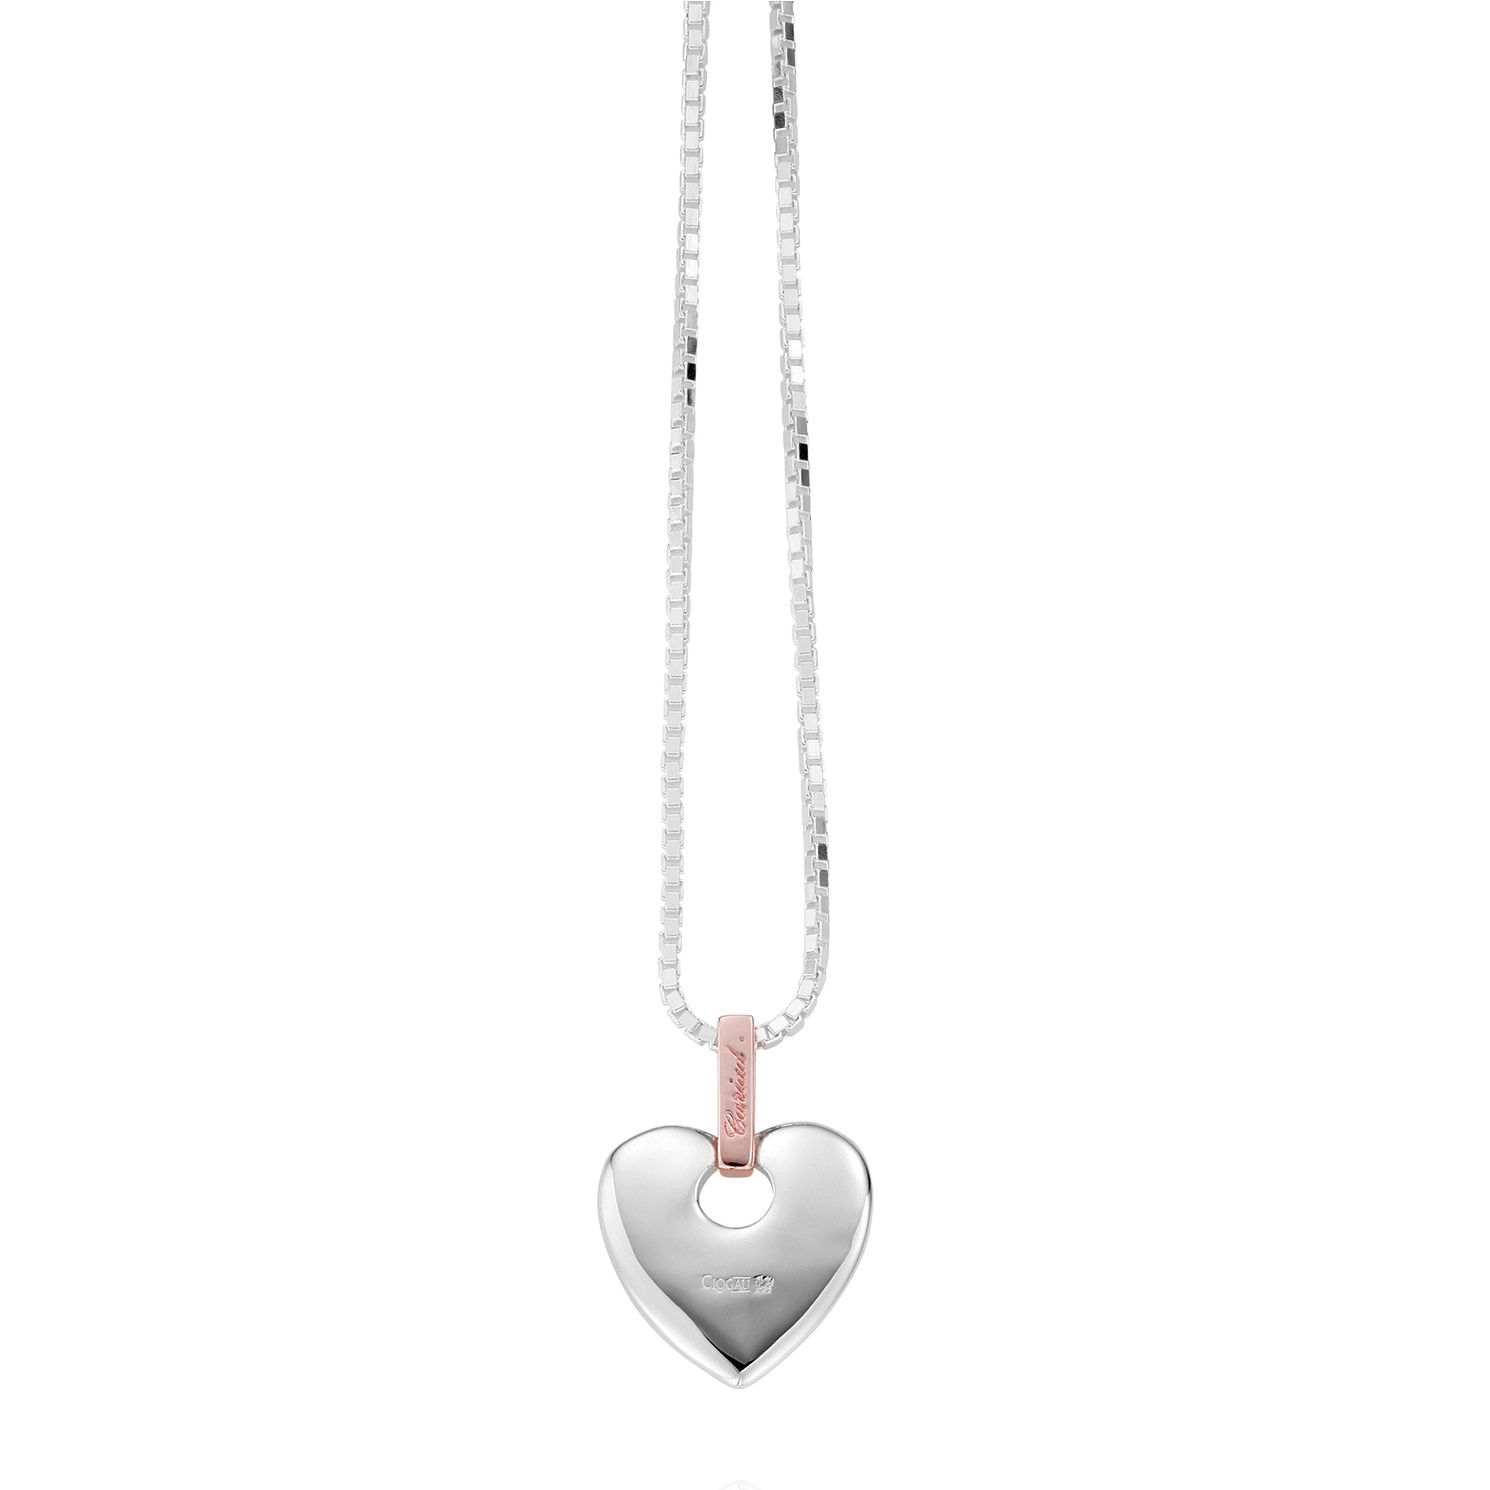 Clogau Cariad Silver & 9ct Rose Gold Heart Pendant - Product number 2210169